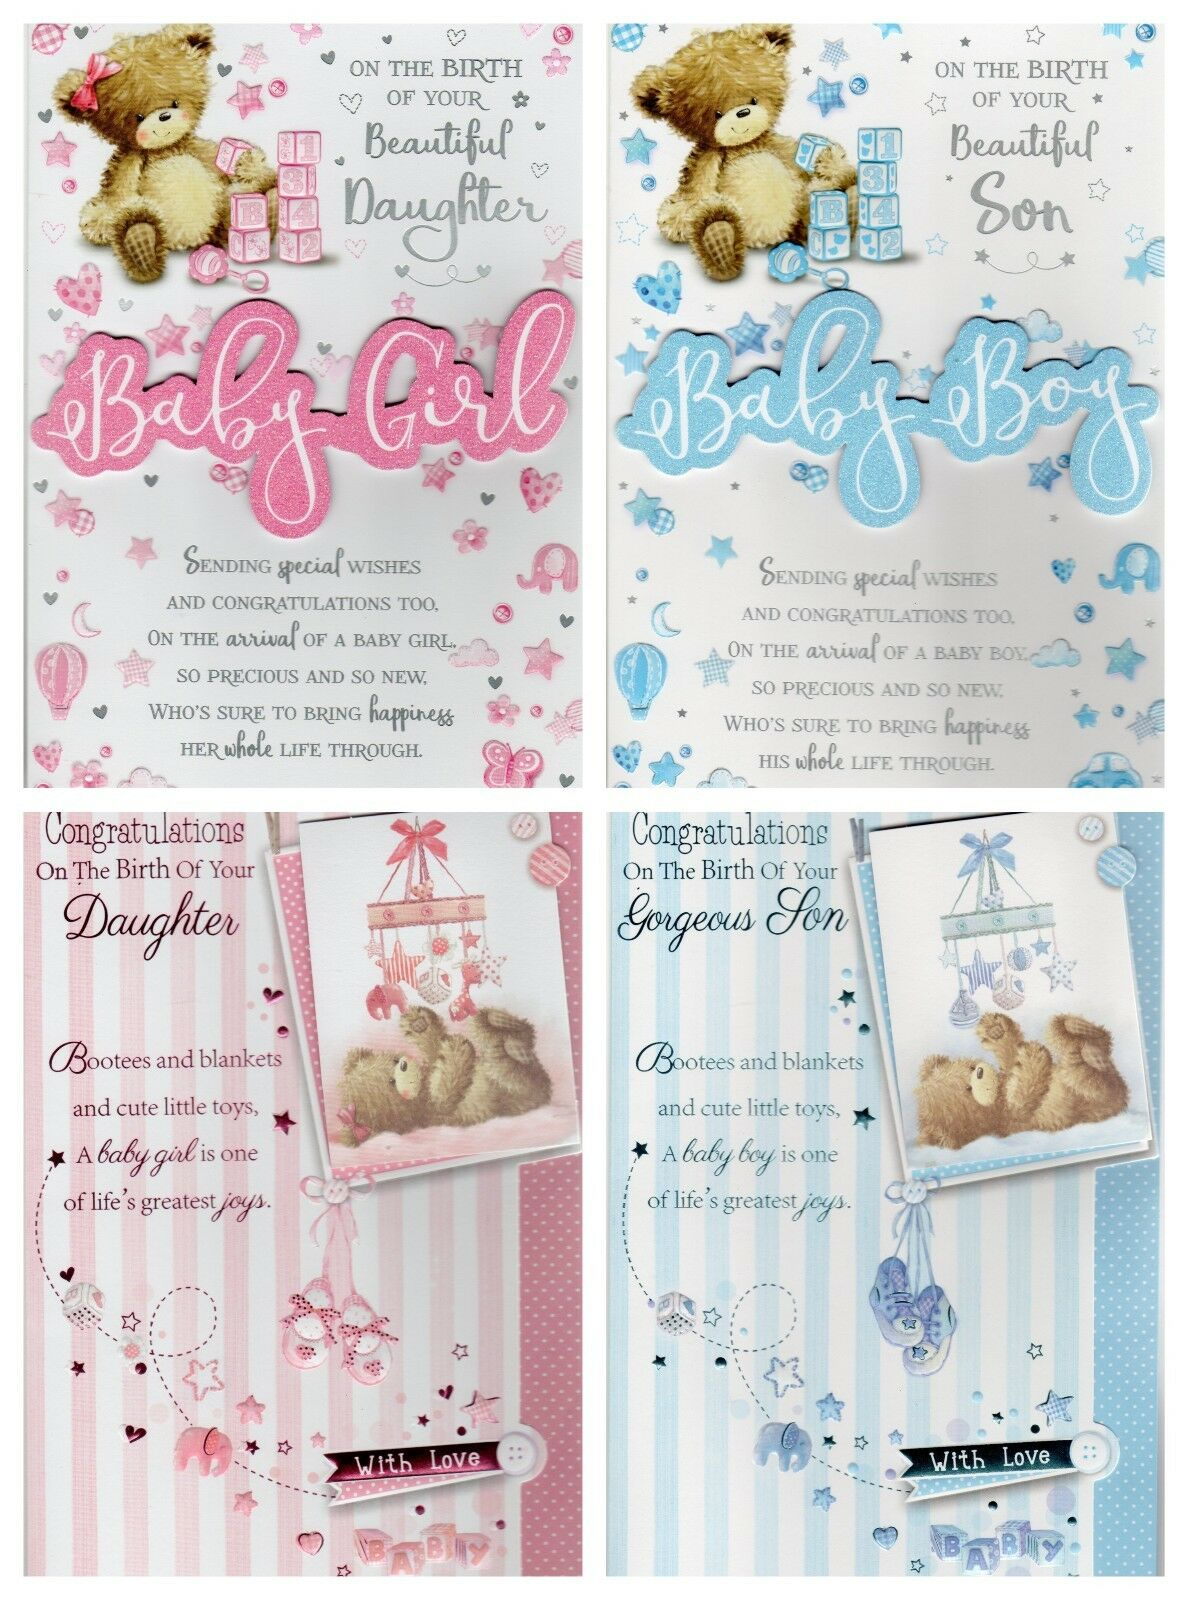 New Baby Greeting Card Congratulations On The Birth Of Your Son